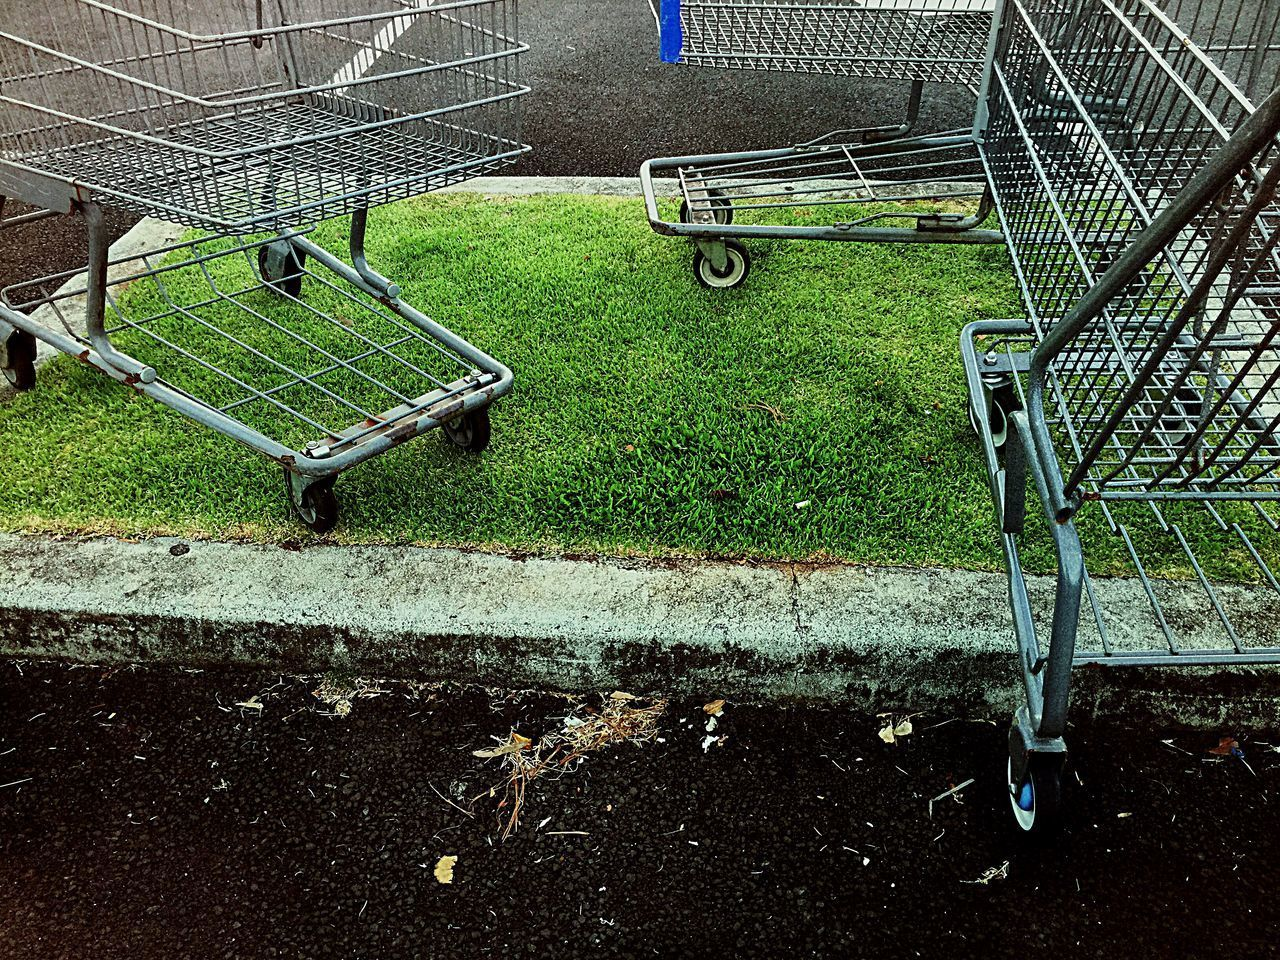 shopping cart, absence, trolley, grass, metal, no people, day, empty, green color, seat, shopping, plant, abandoned, transportation, consumerism, nature, outdoors, bench, high angle view, field, park bench, wheel